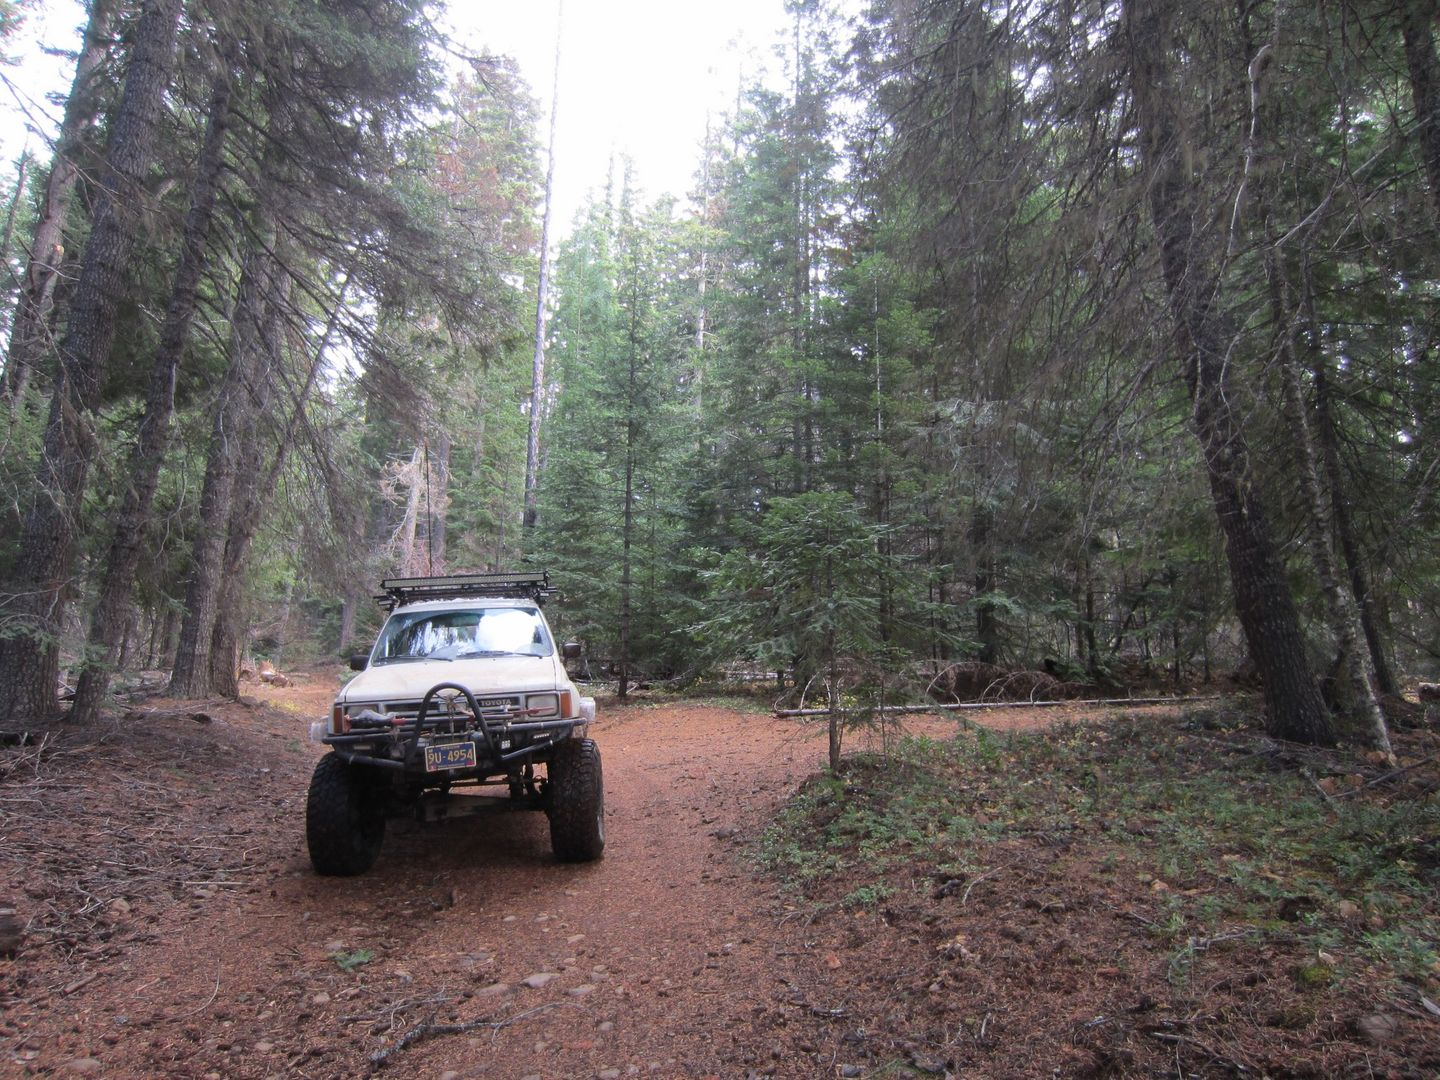 Barlow Trail - Waypoint 15: Go Right